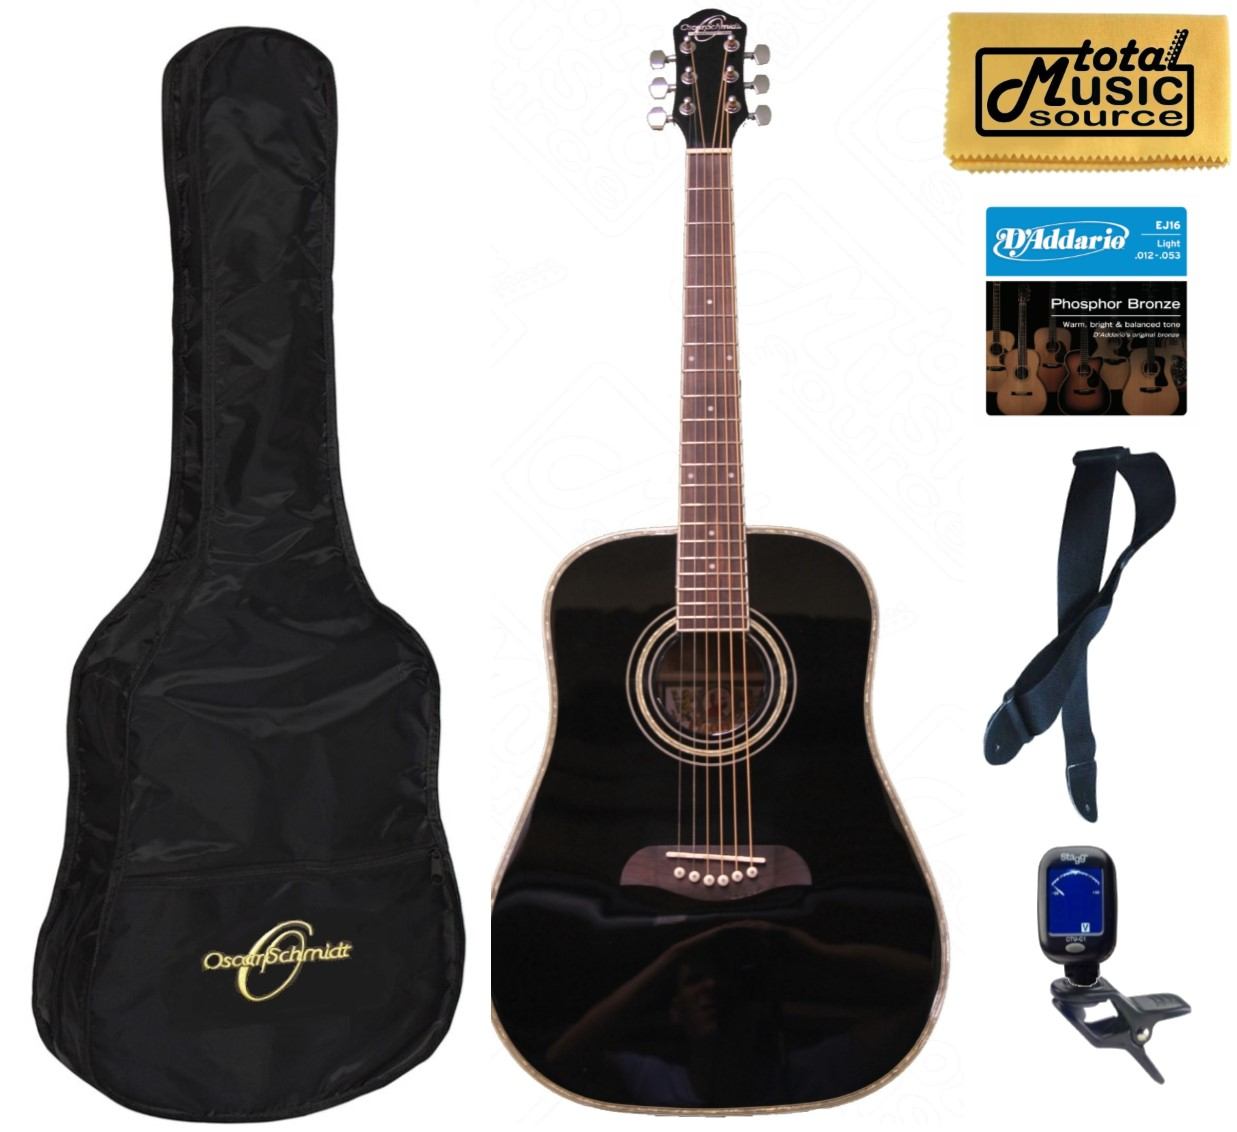 Oscar Schmidt Left Hand Dreadnought Style 3/4 Size Black Acoustic Guitar,Bundle w/Bag OG1BLH, OG1BLH BAGPACK